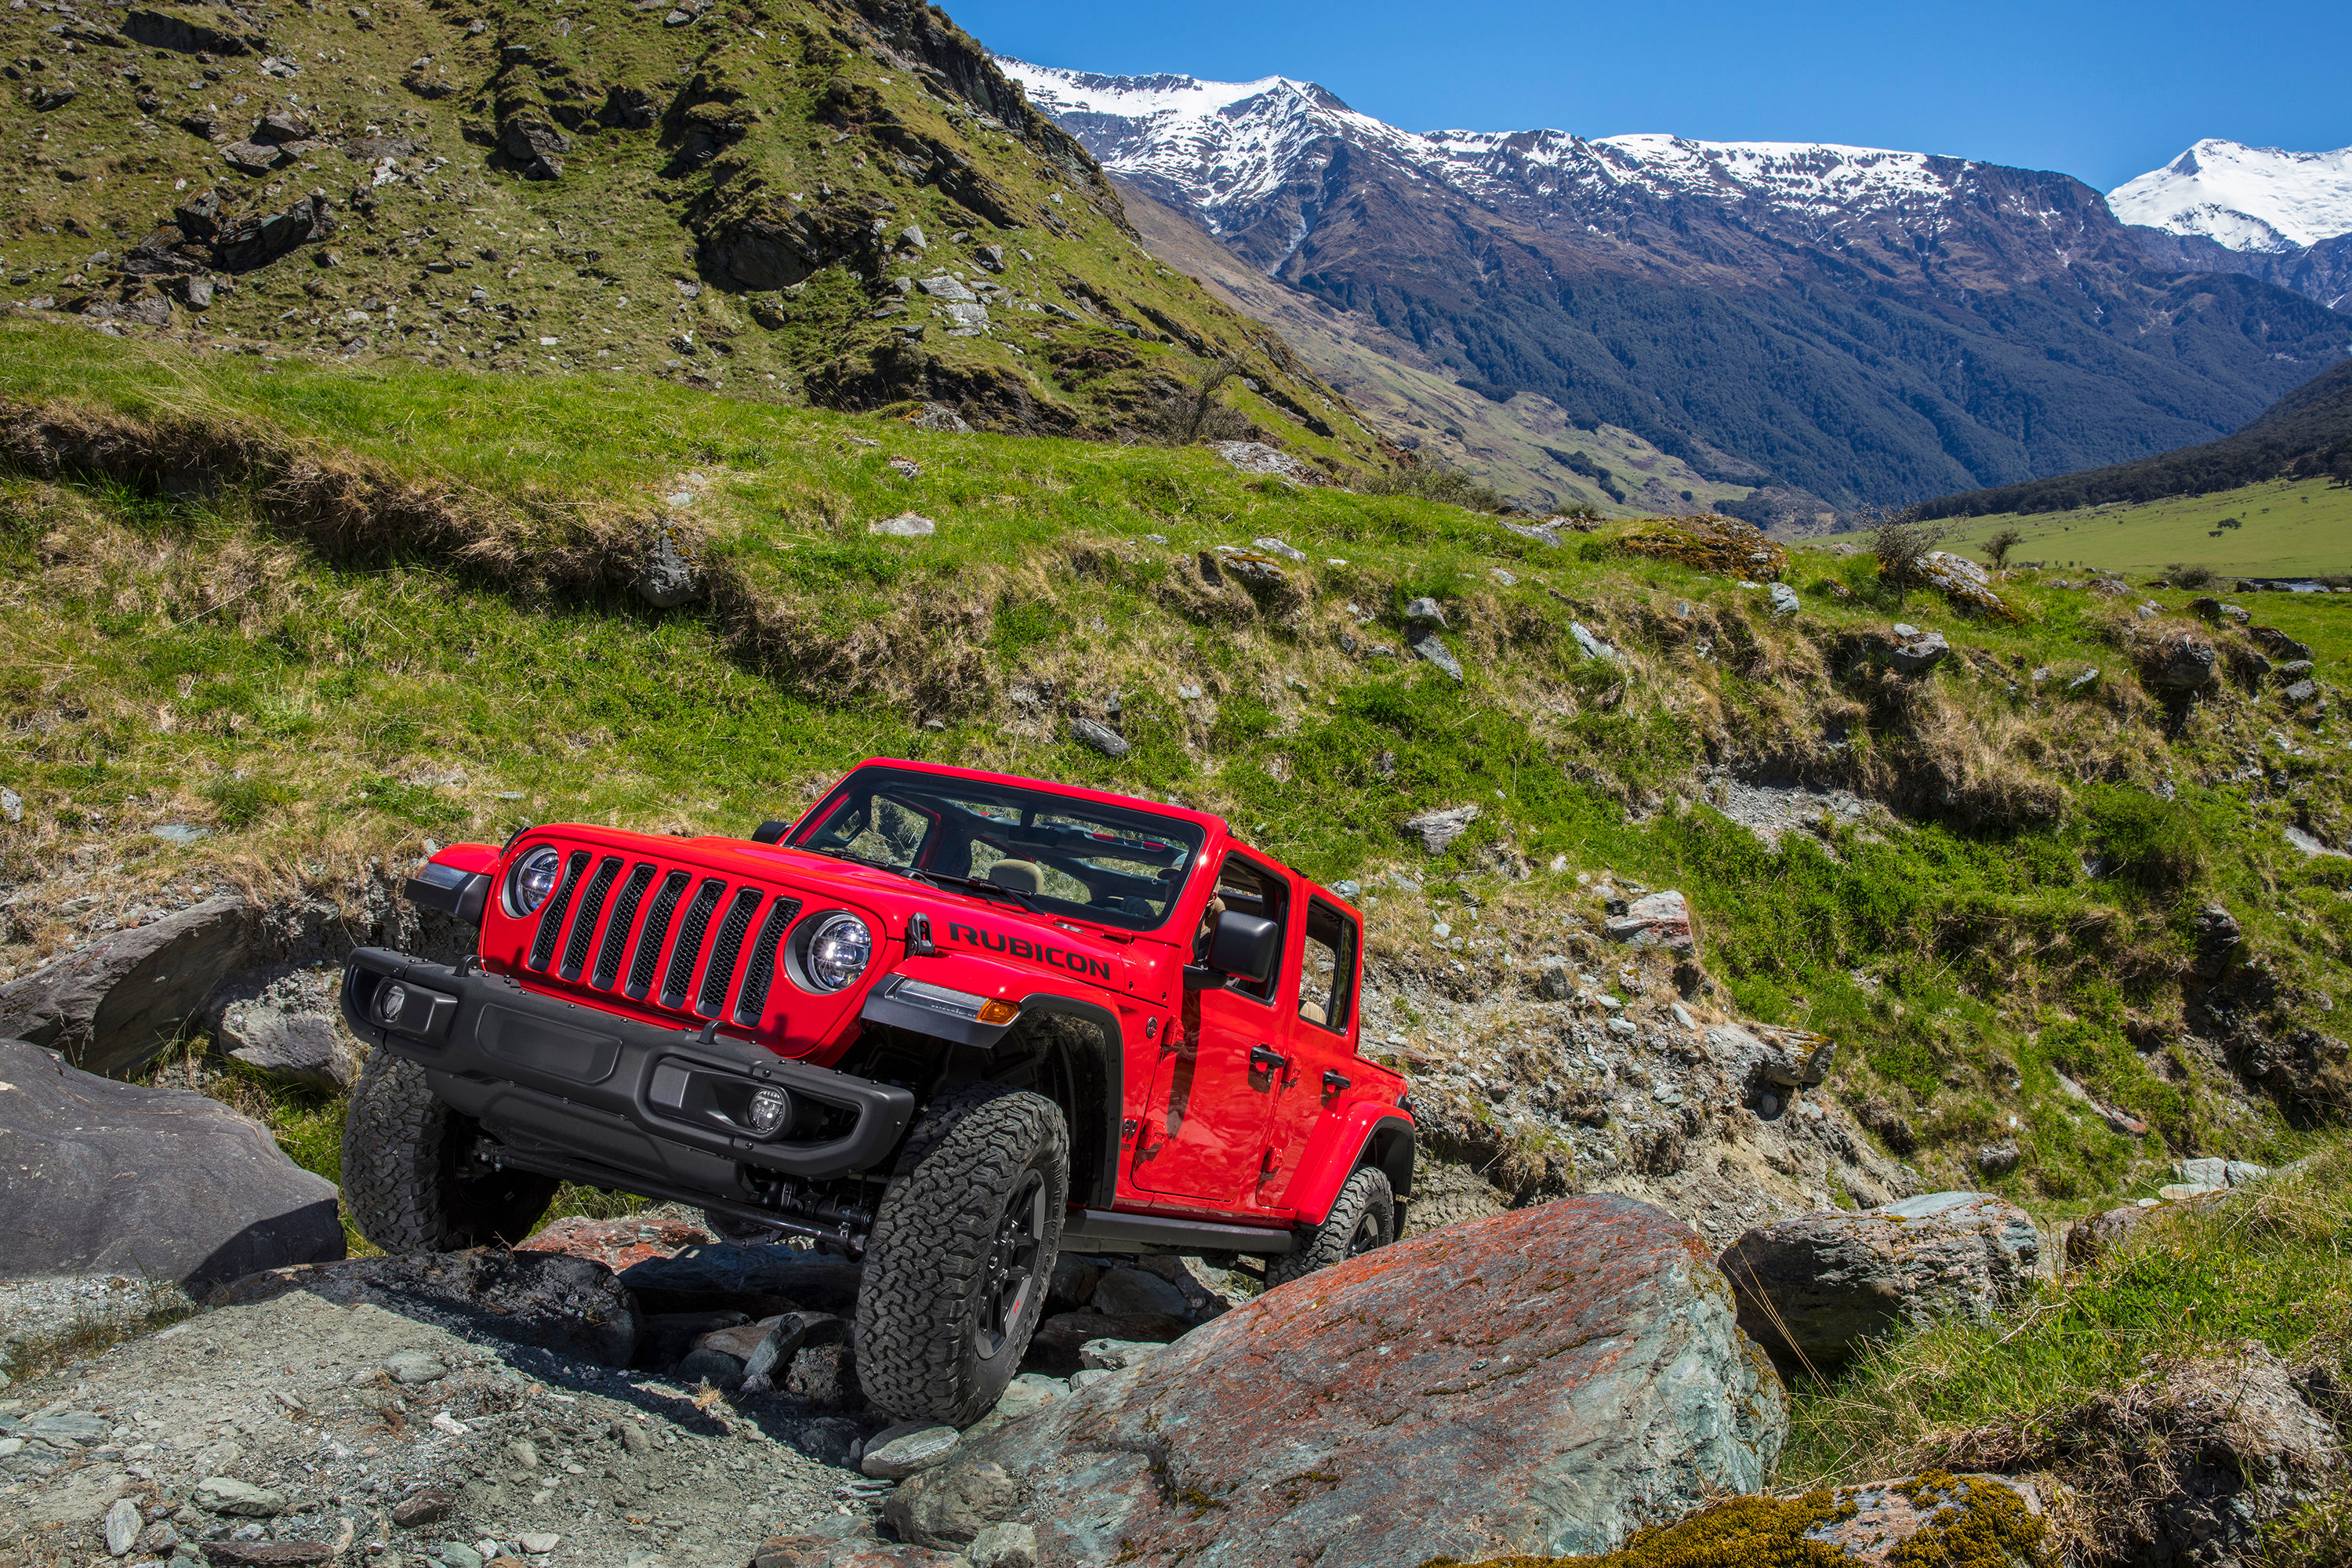 Made in India Jeep Wrangler launched: Everything you need to know